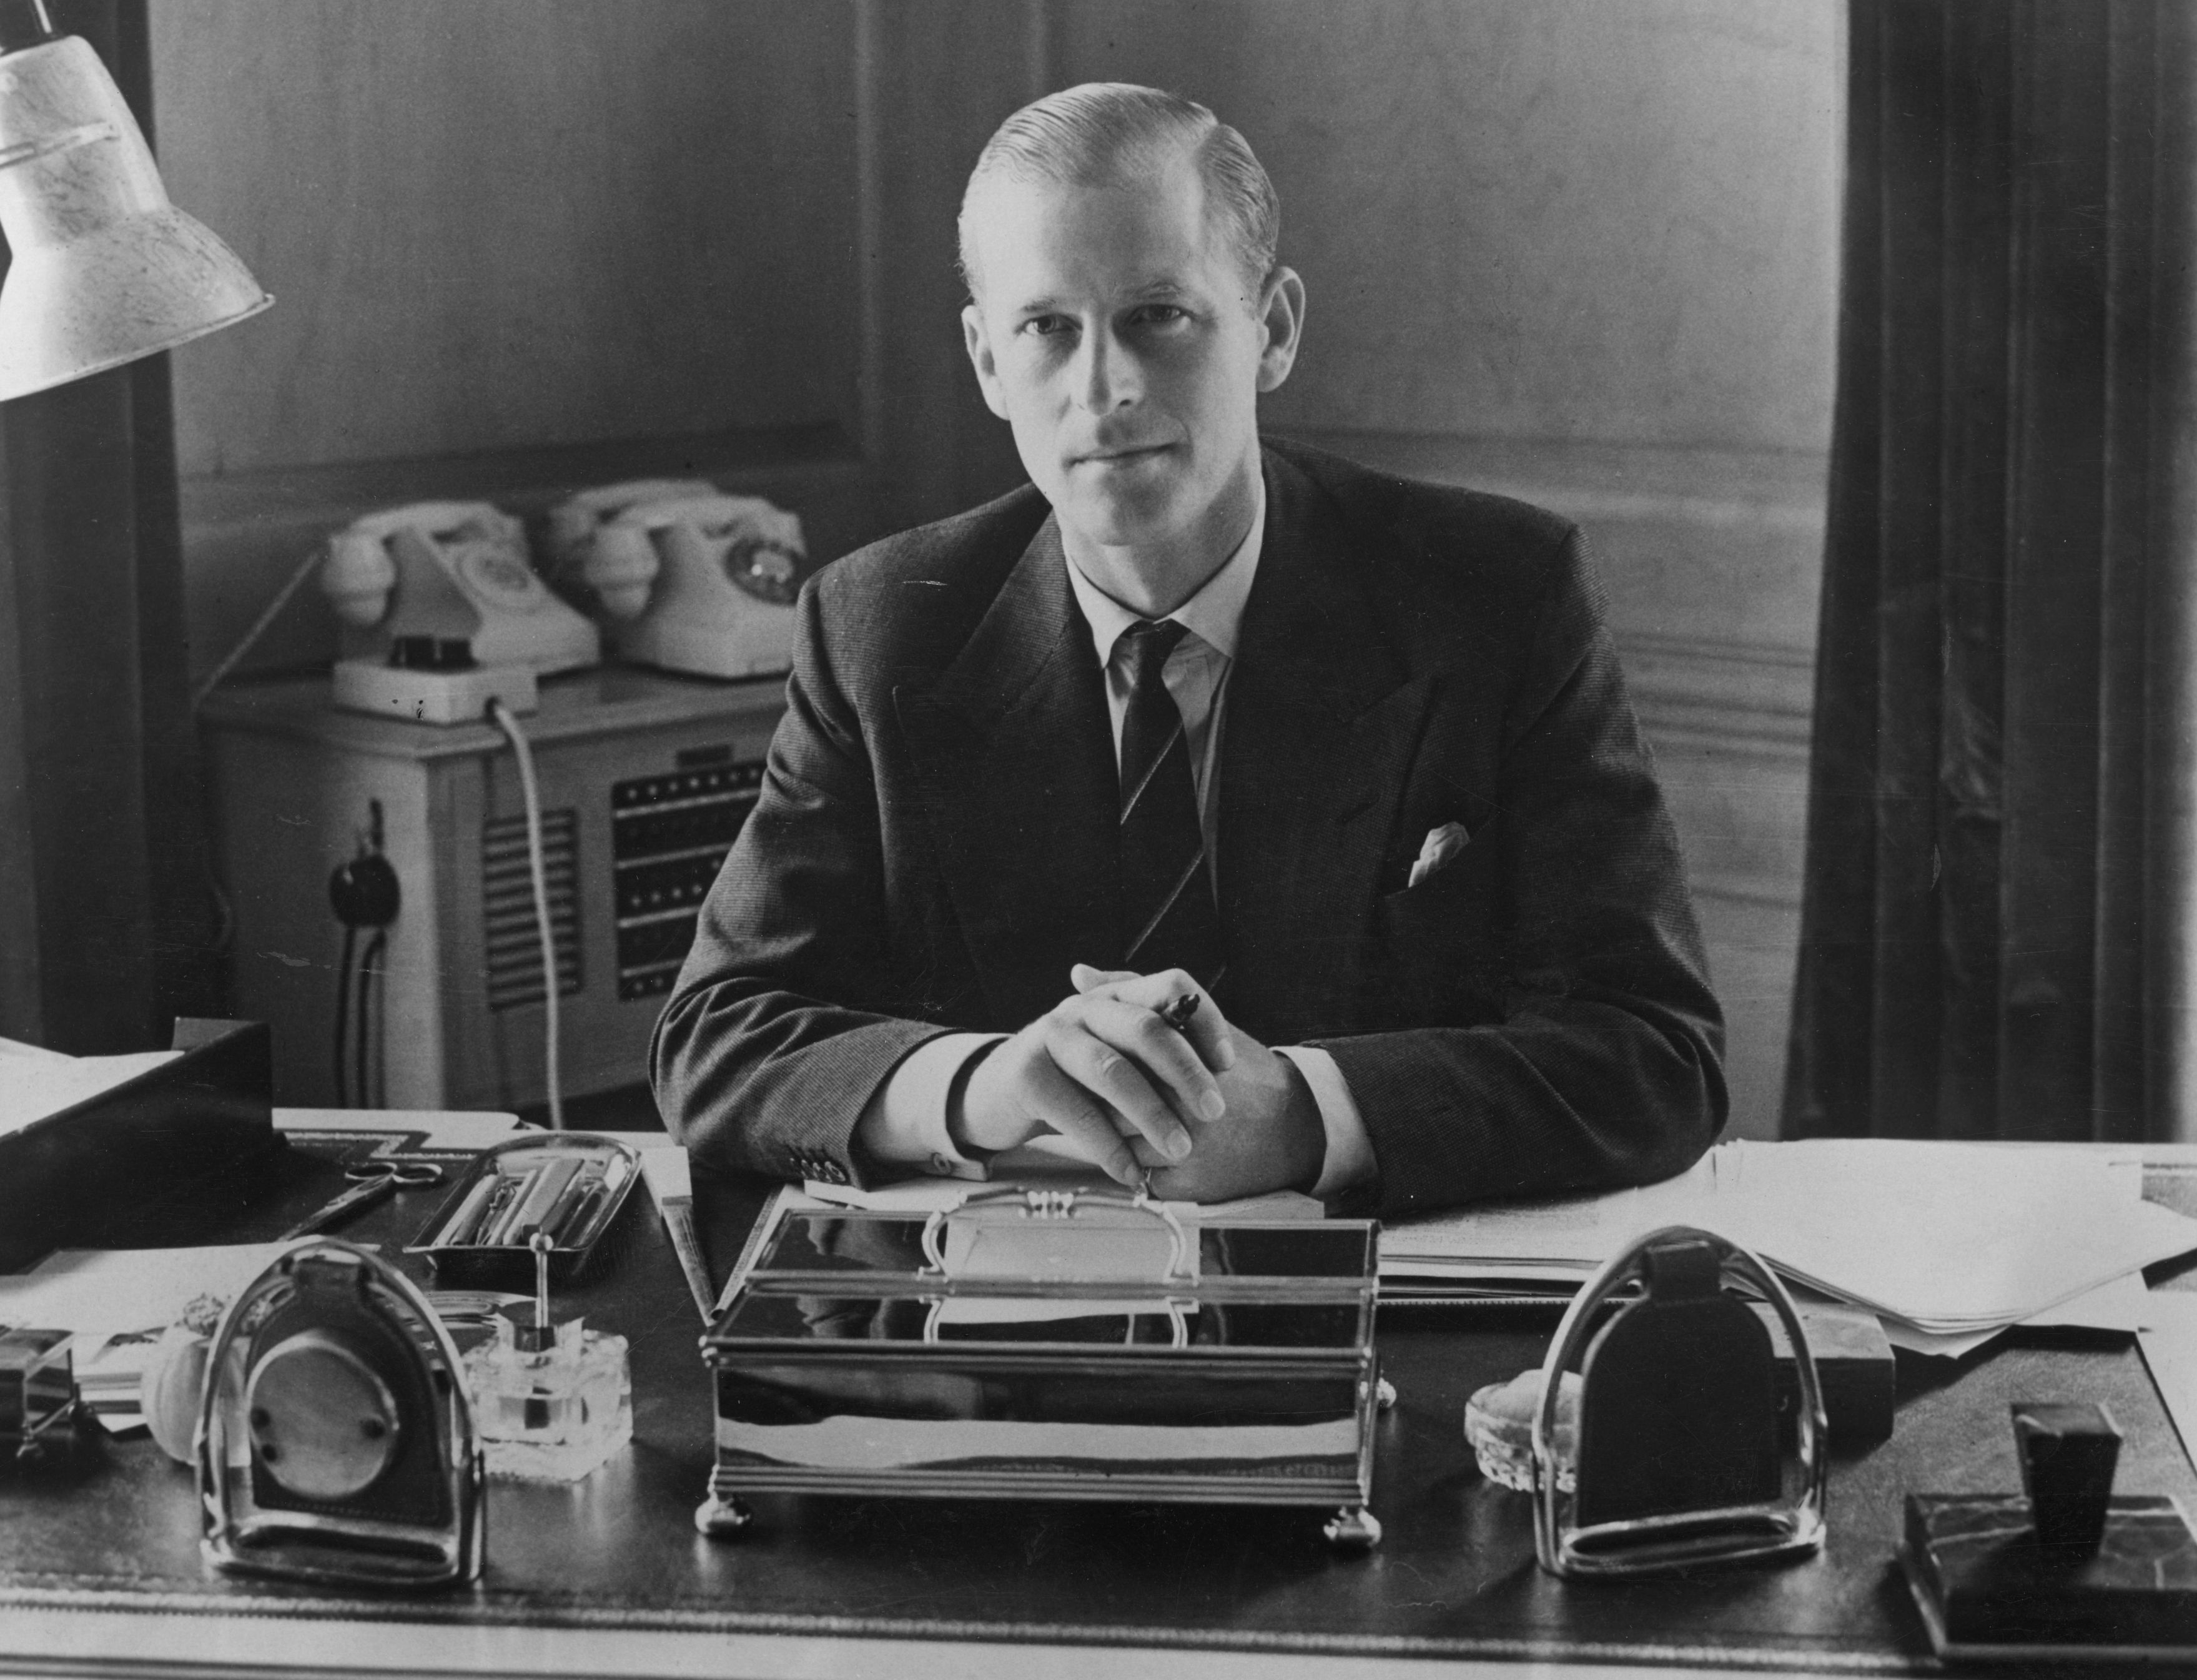 Prince Philip pictured at his desk at Clarence House, 1951, England.   Photo: Getty Images